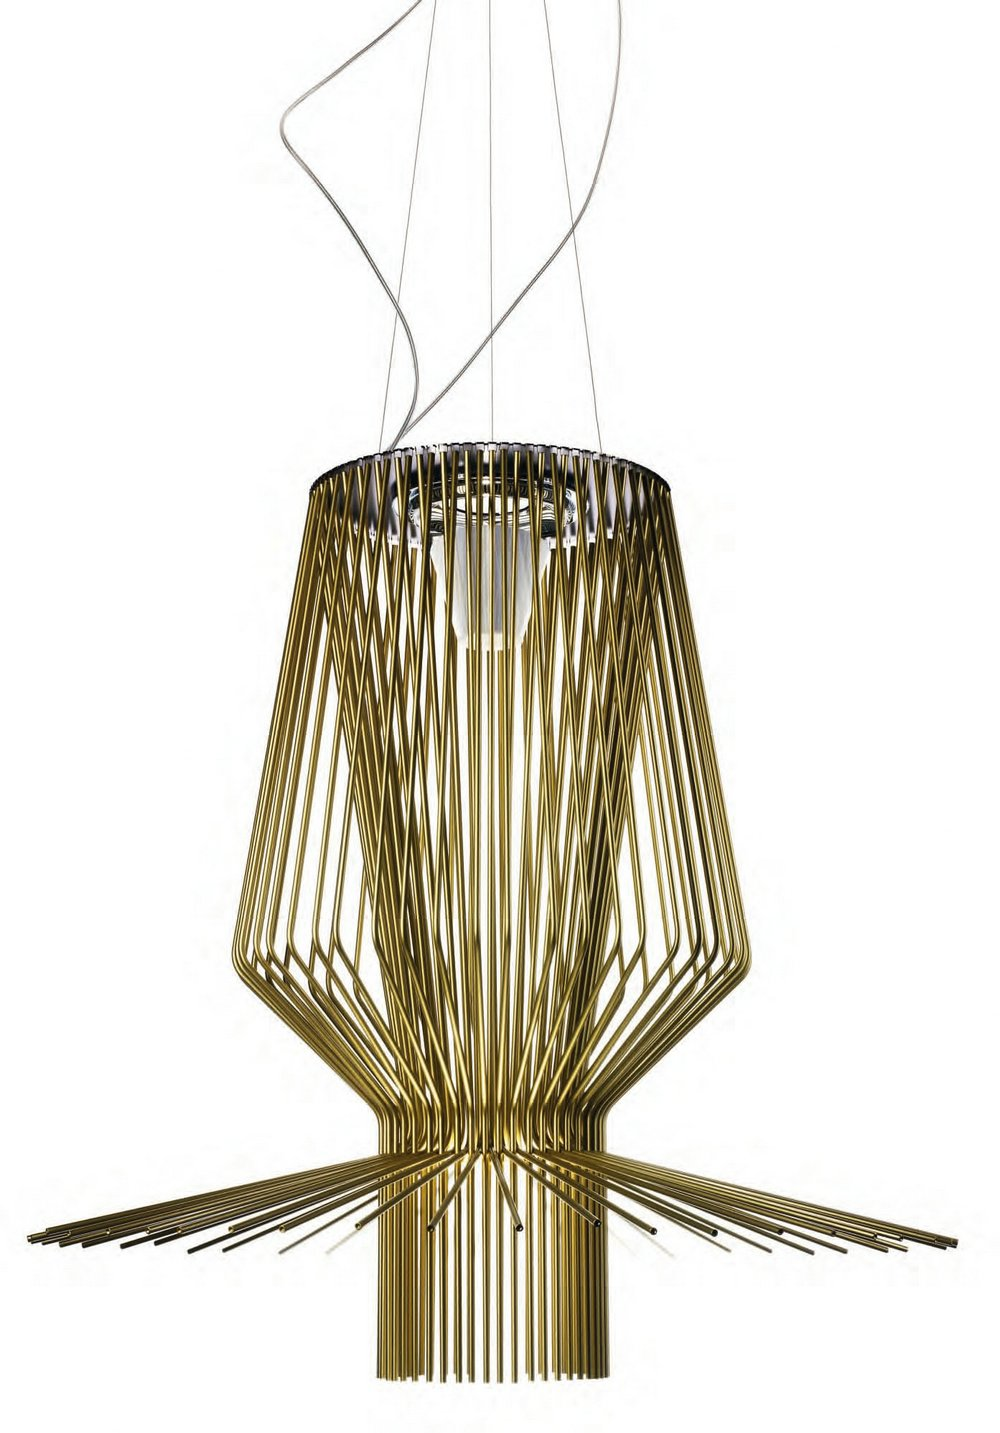 Allegro Assai Pendant Lamp ø136cm Gold